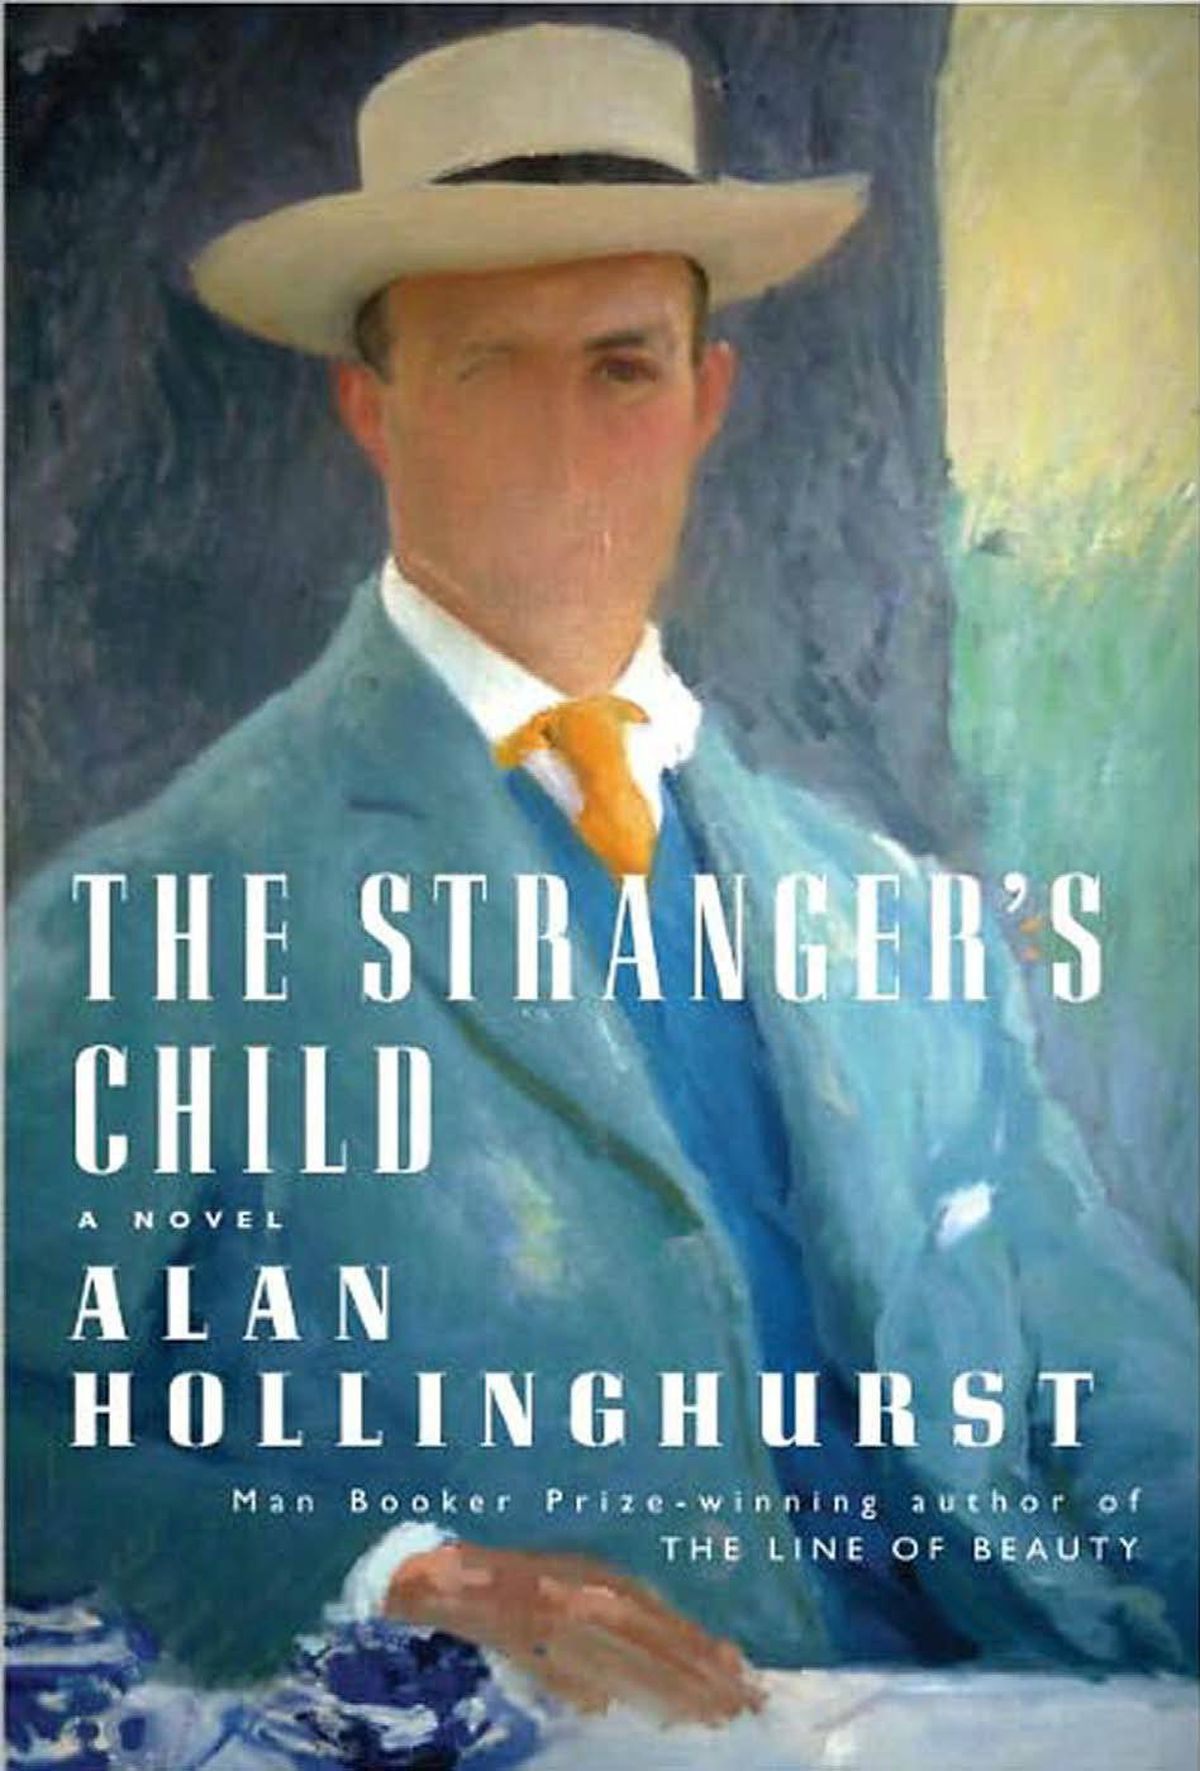 THE STRANGER'S CHILD By Alan Hollinghurst (Knopf Canada) This powerful novel about myth-making, biography and the lot of gay men is unabashedly ambitious in theme and intelligent in execution. It begins in 1913, when George Sawle brings Cecil Valance home from Cambridge, and ends in 2008. Threaded throughout is a history of the possibilities open to gay men before 1967, when homosexuality was legalized in Britain.. – Margot Livesey